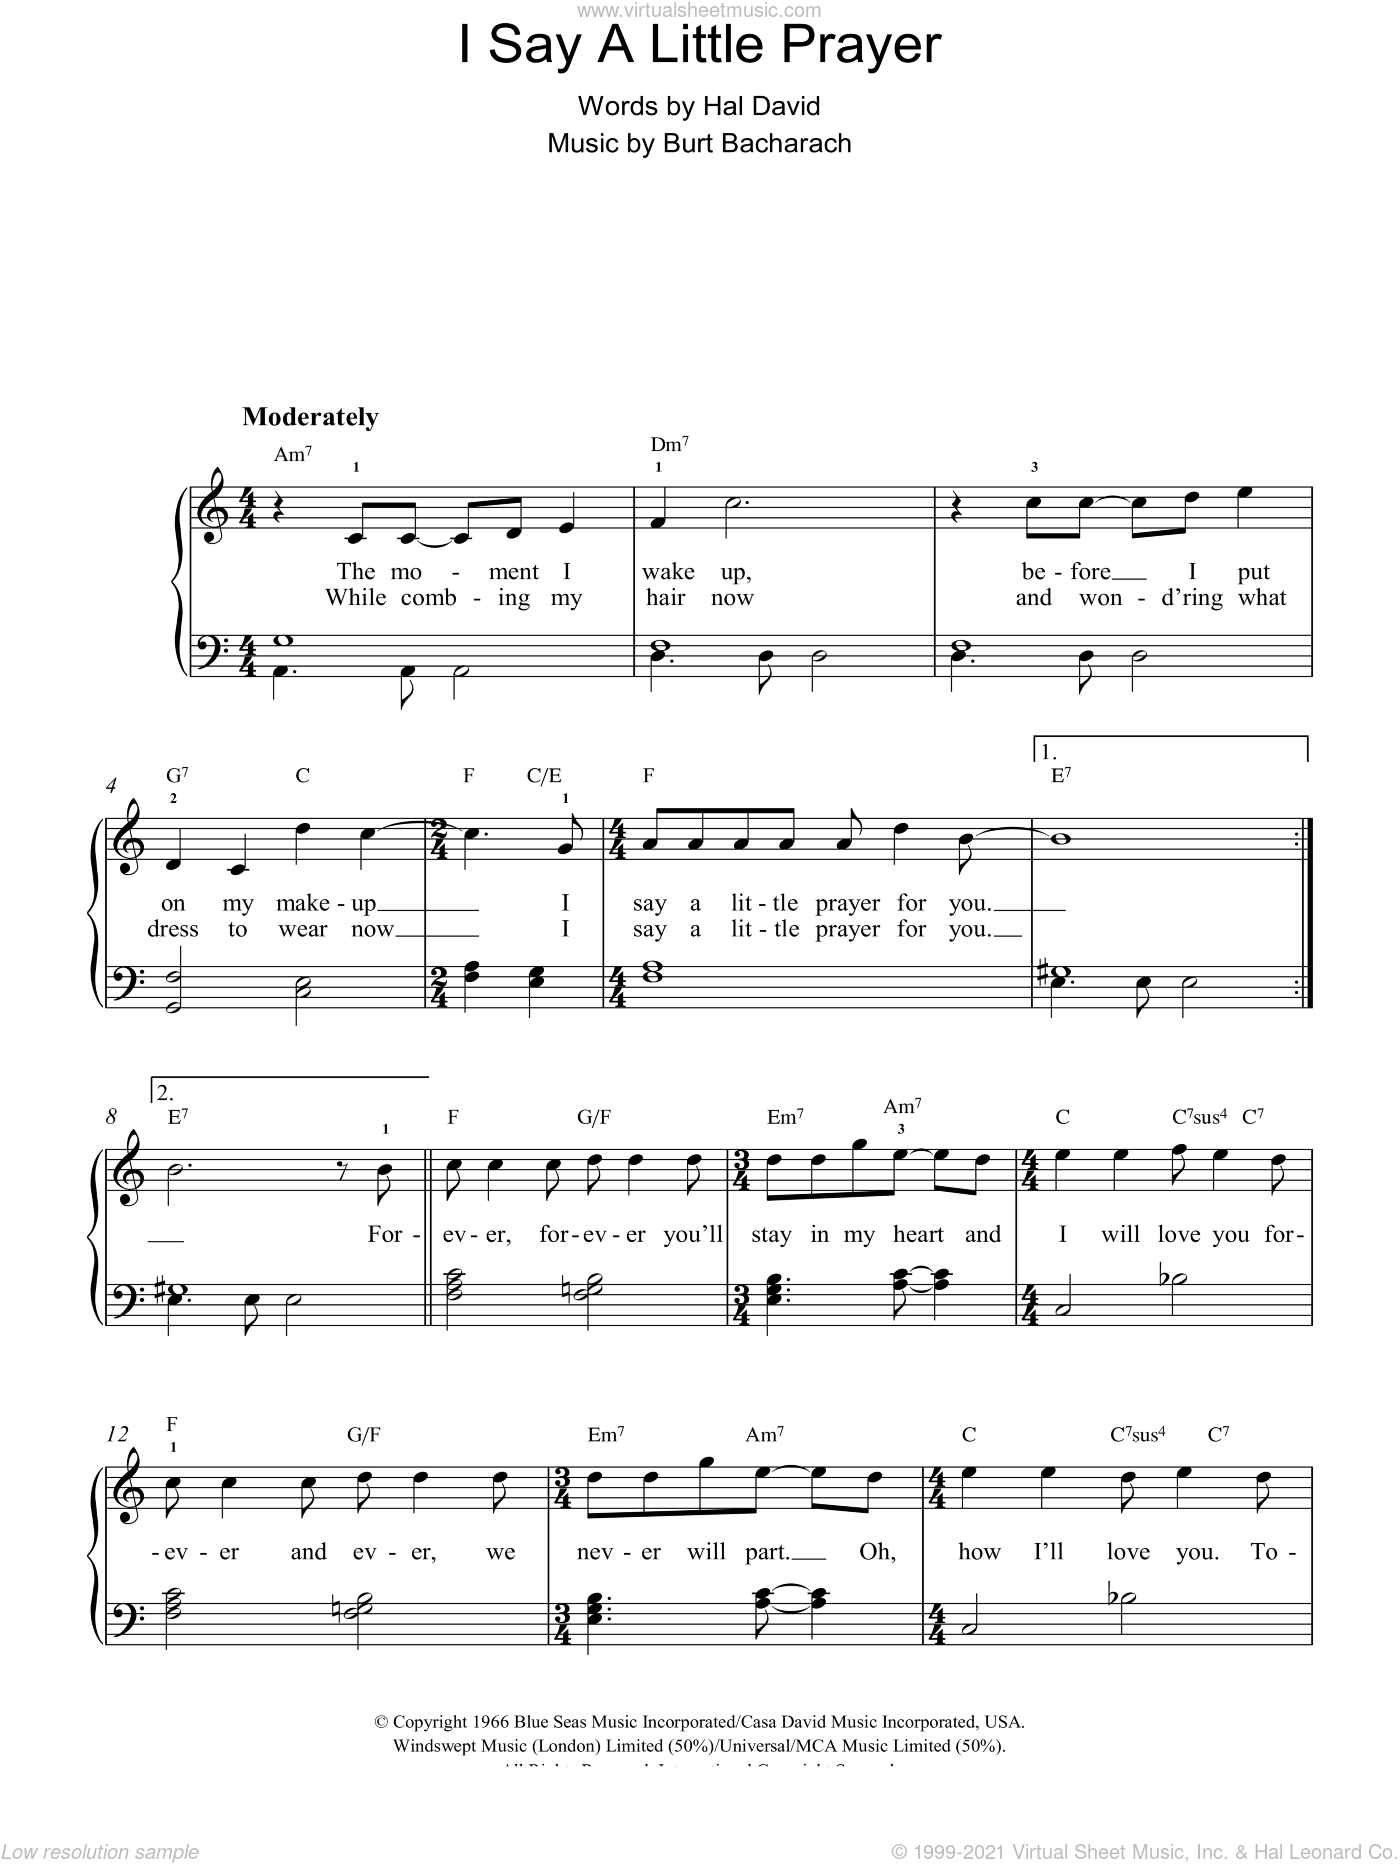 I Say A Little Prayer sheet music for piano solo by Hal David